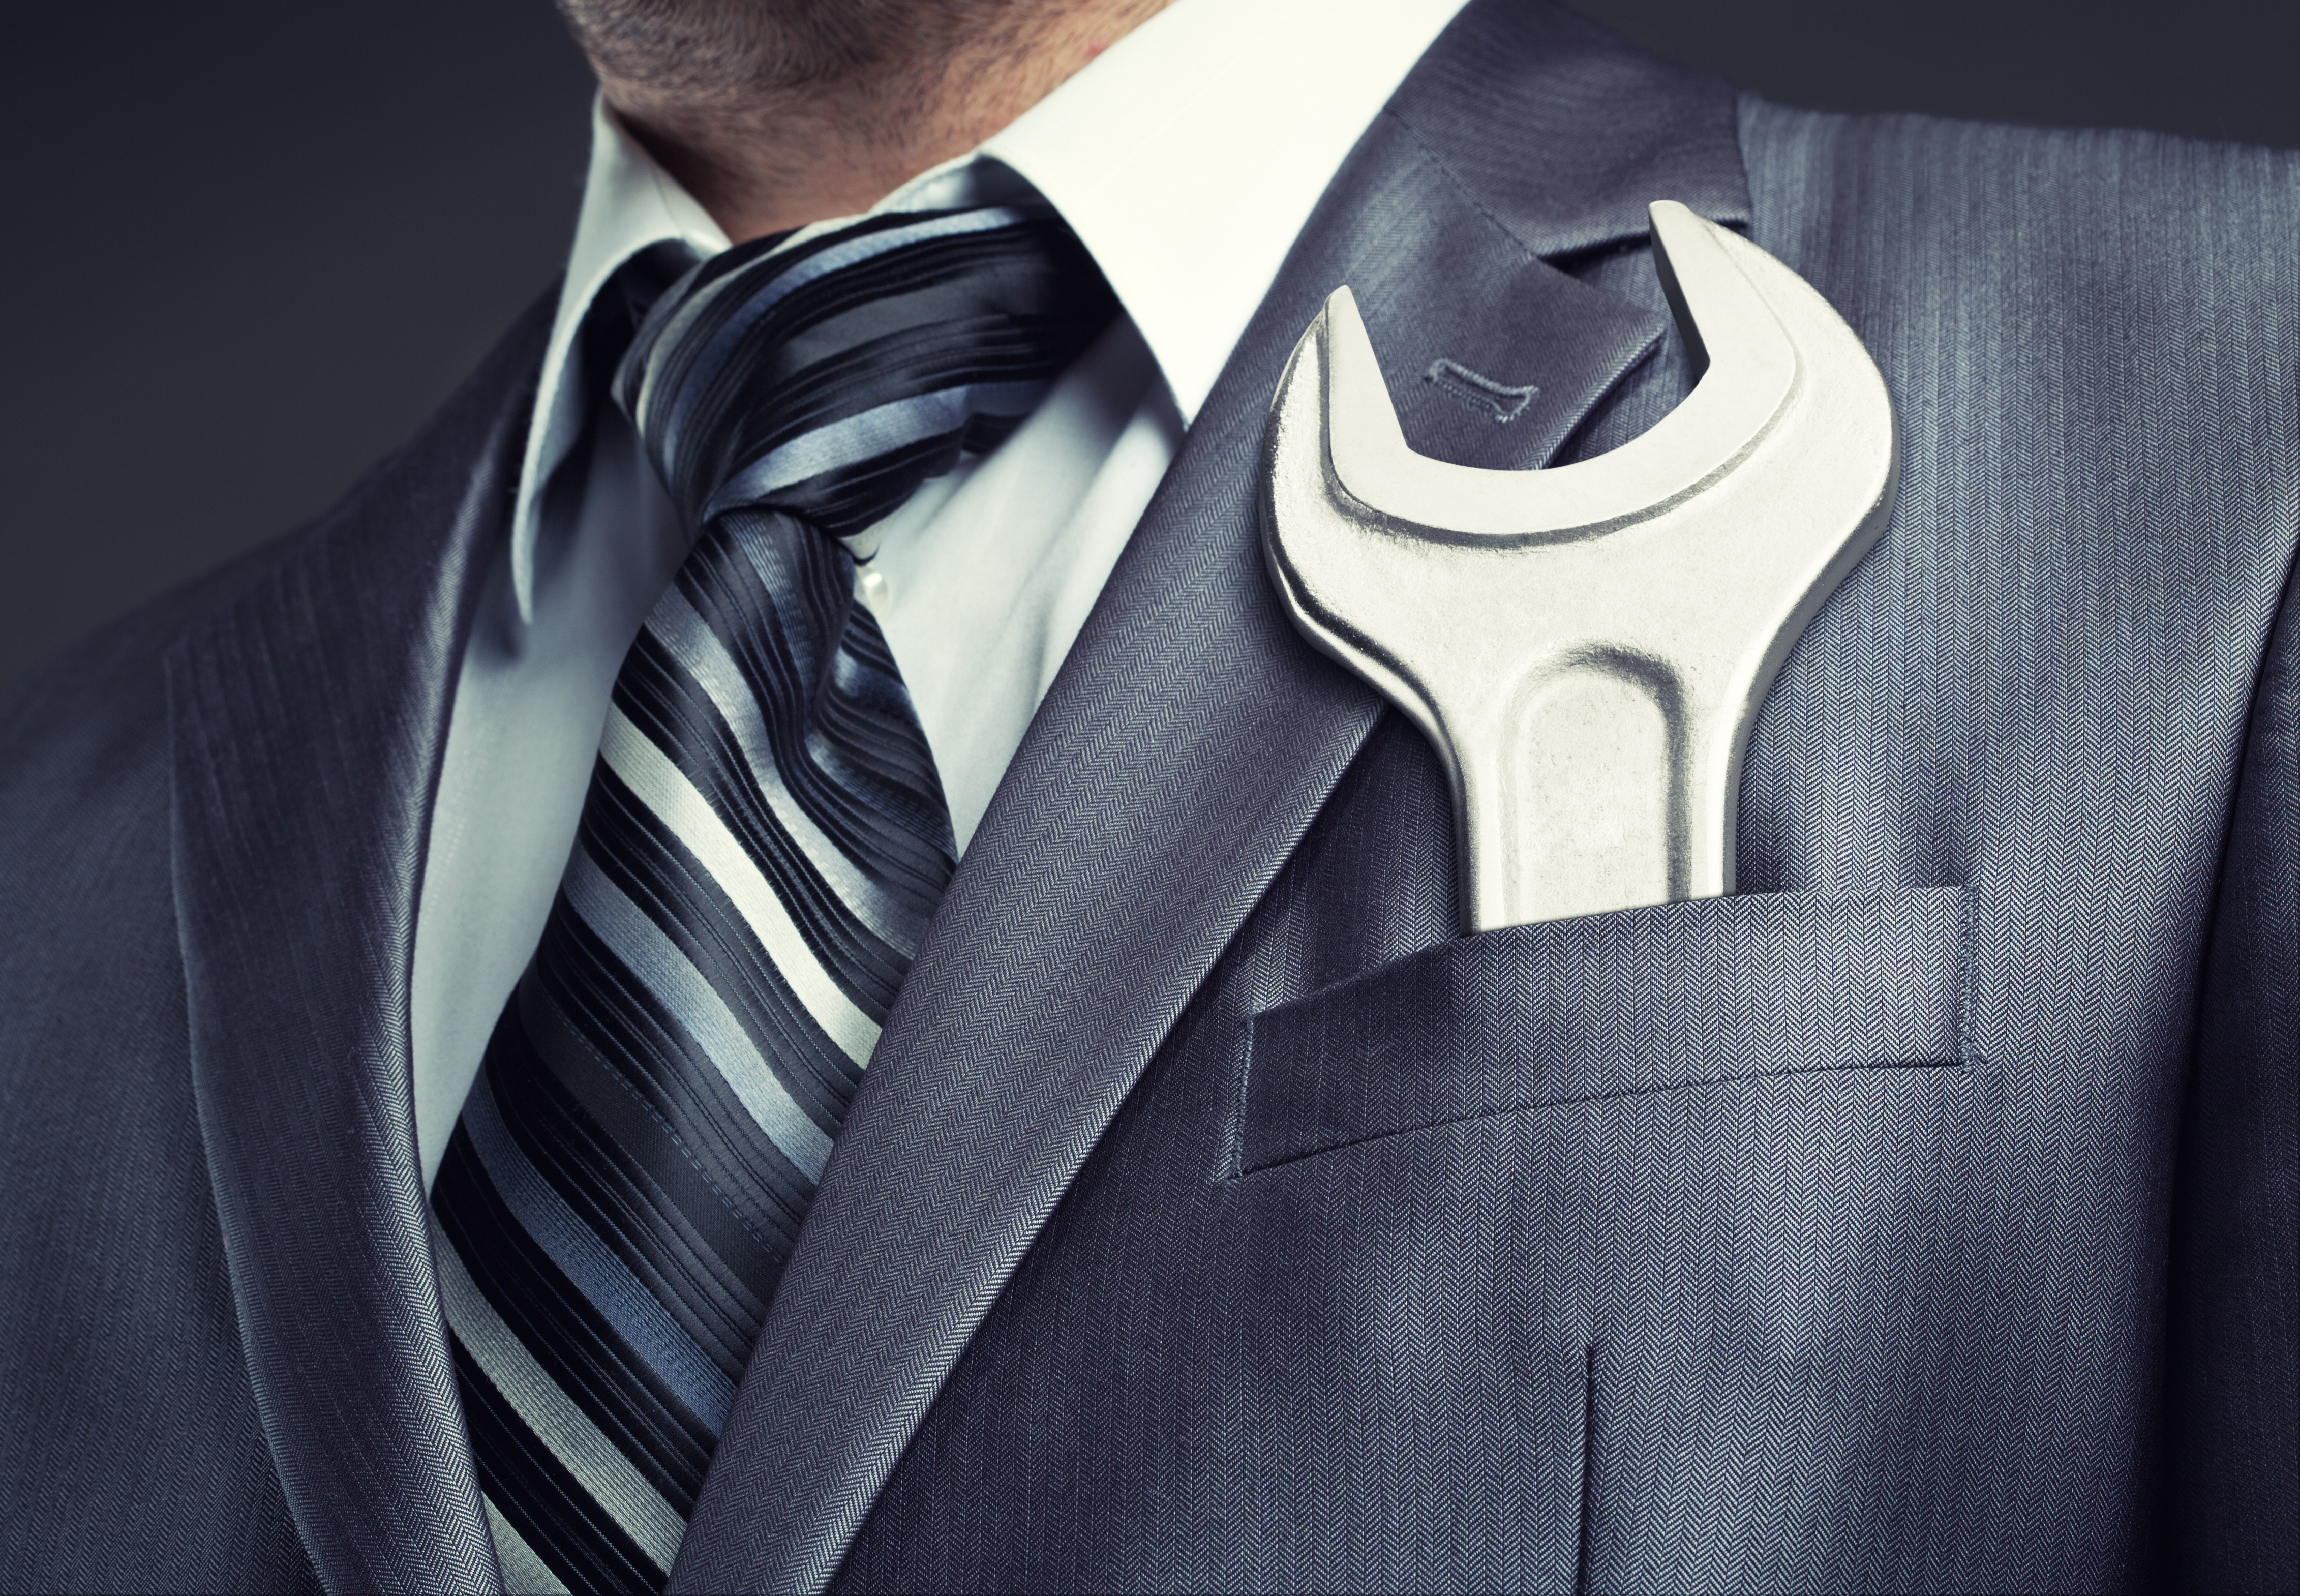 Contractor in a suit with spanner